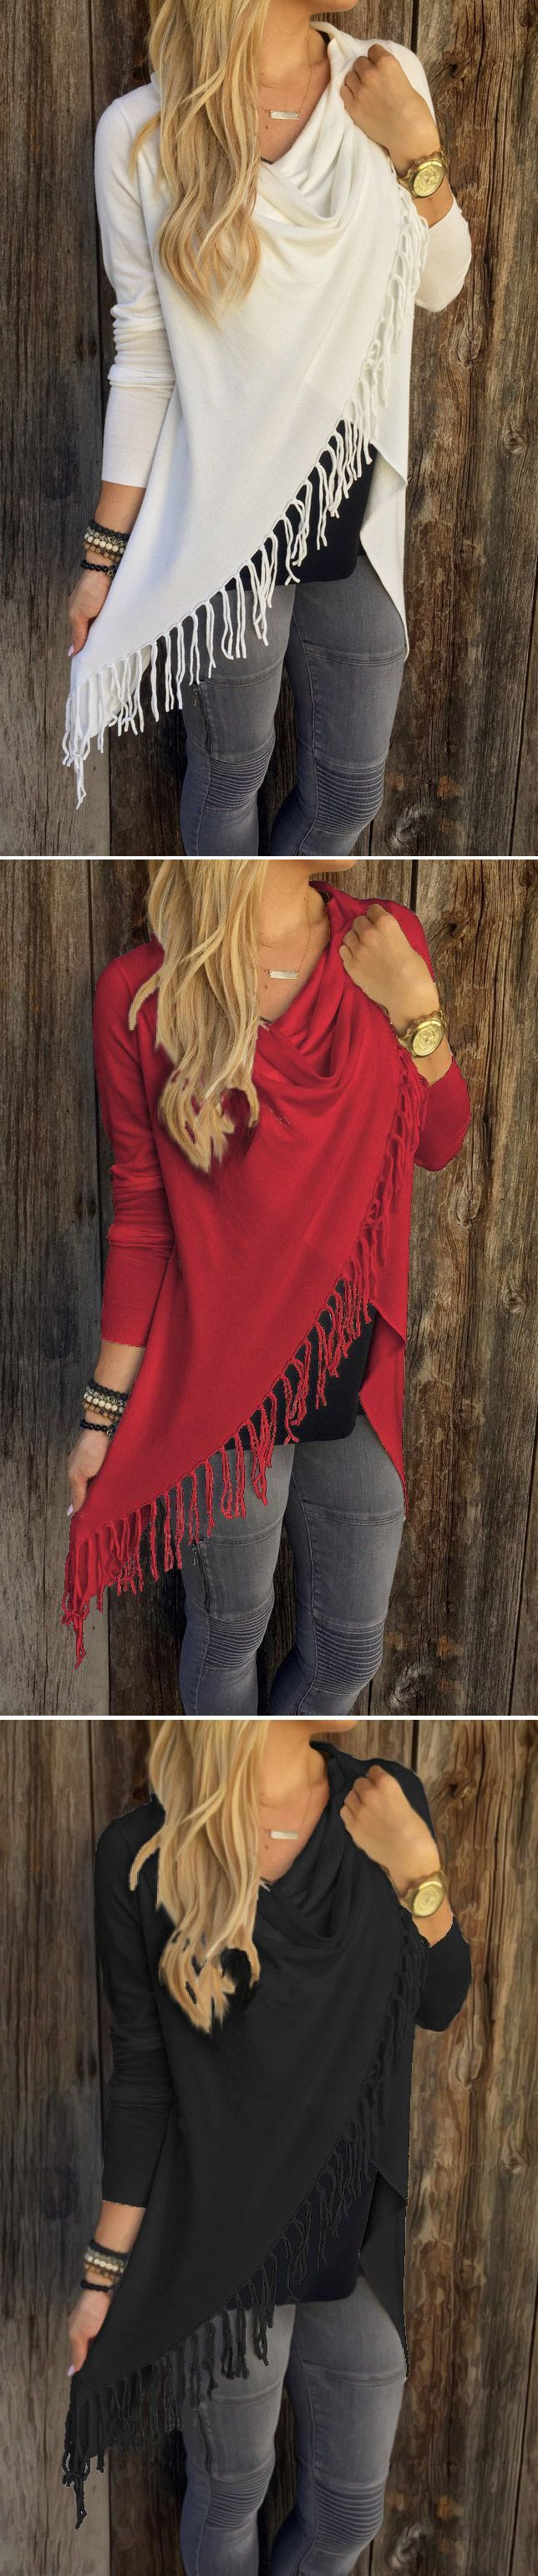 Meet the new street style tops and come as you are. The Tops features oblique placket and tassel hem. Holiday hot sale at CUPSHE.COM !